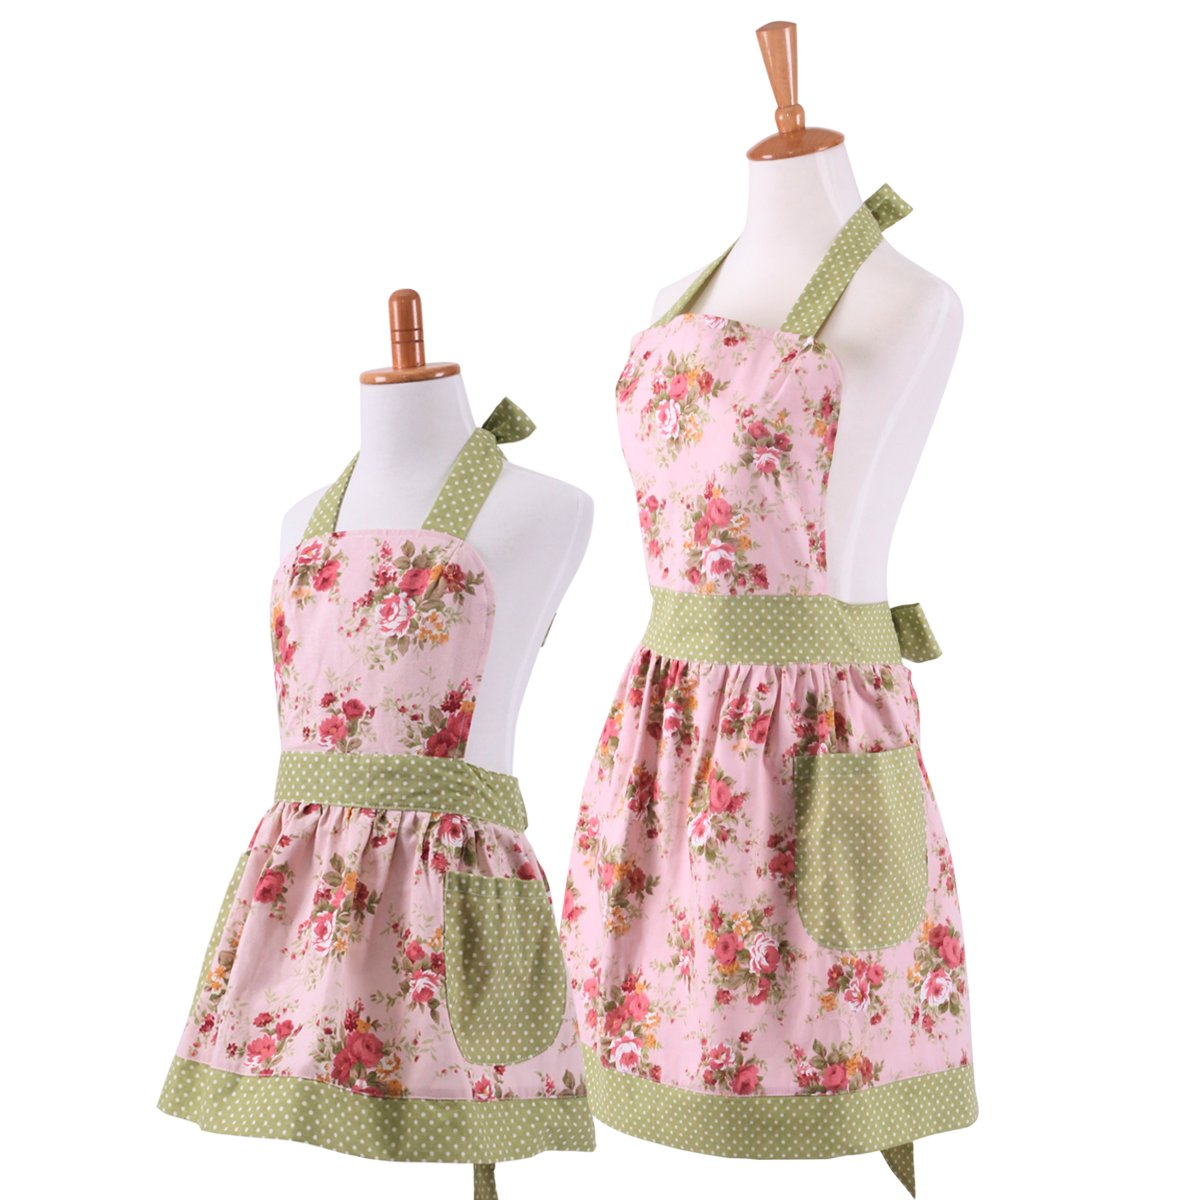 1950s House Dresses and Aprons History Neoviva Cotton Canvas Kitchen Apron for Women and Kid Girl Floral Pink  AT vintagedancer.com